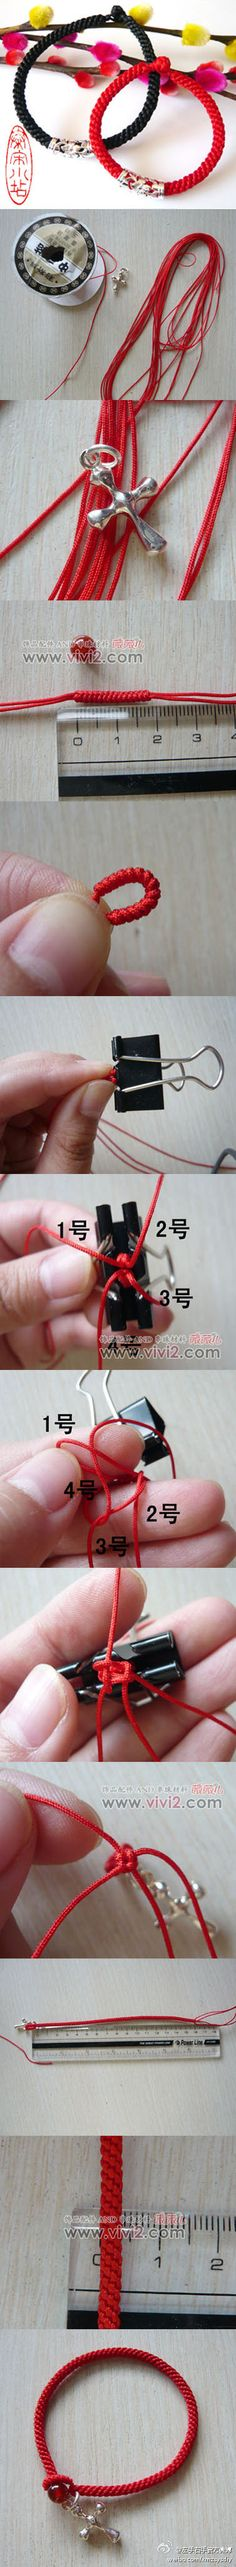 Manual diy# red line hand rope of weave tutorial